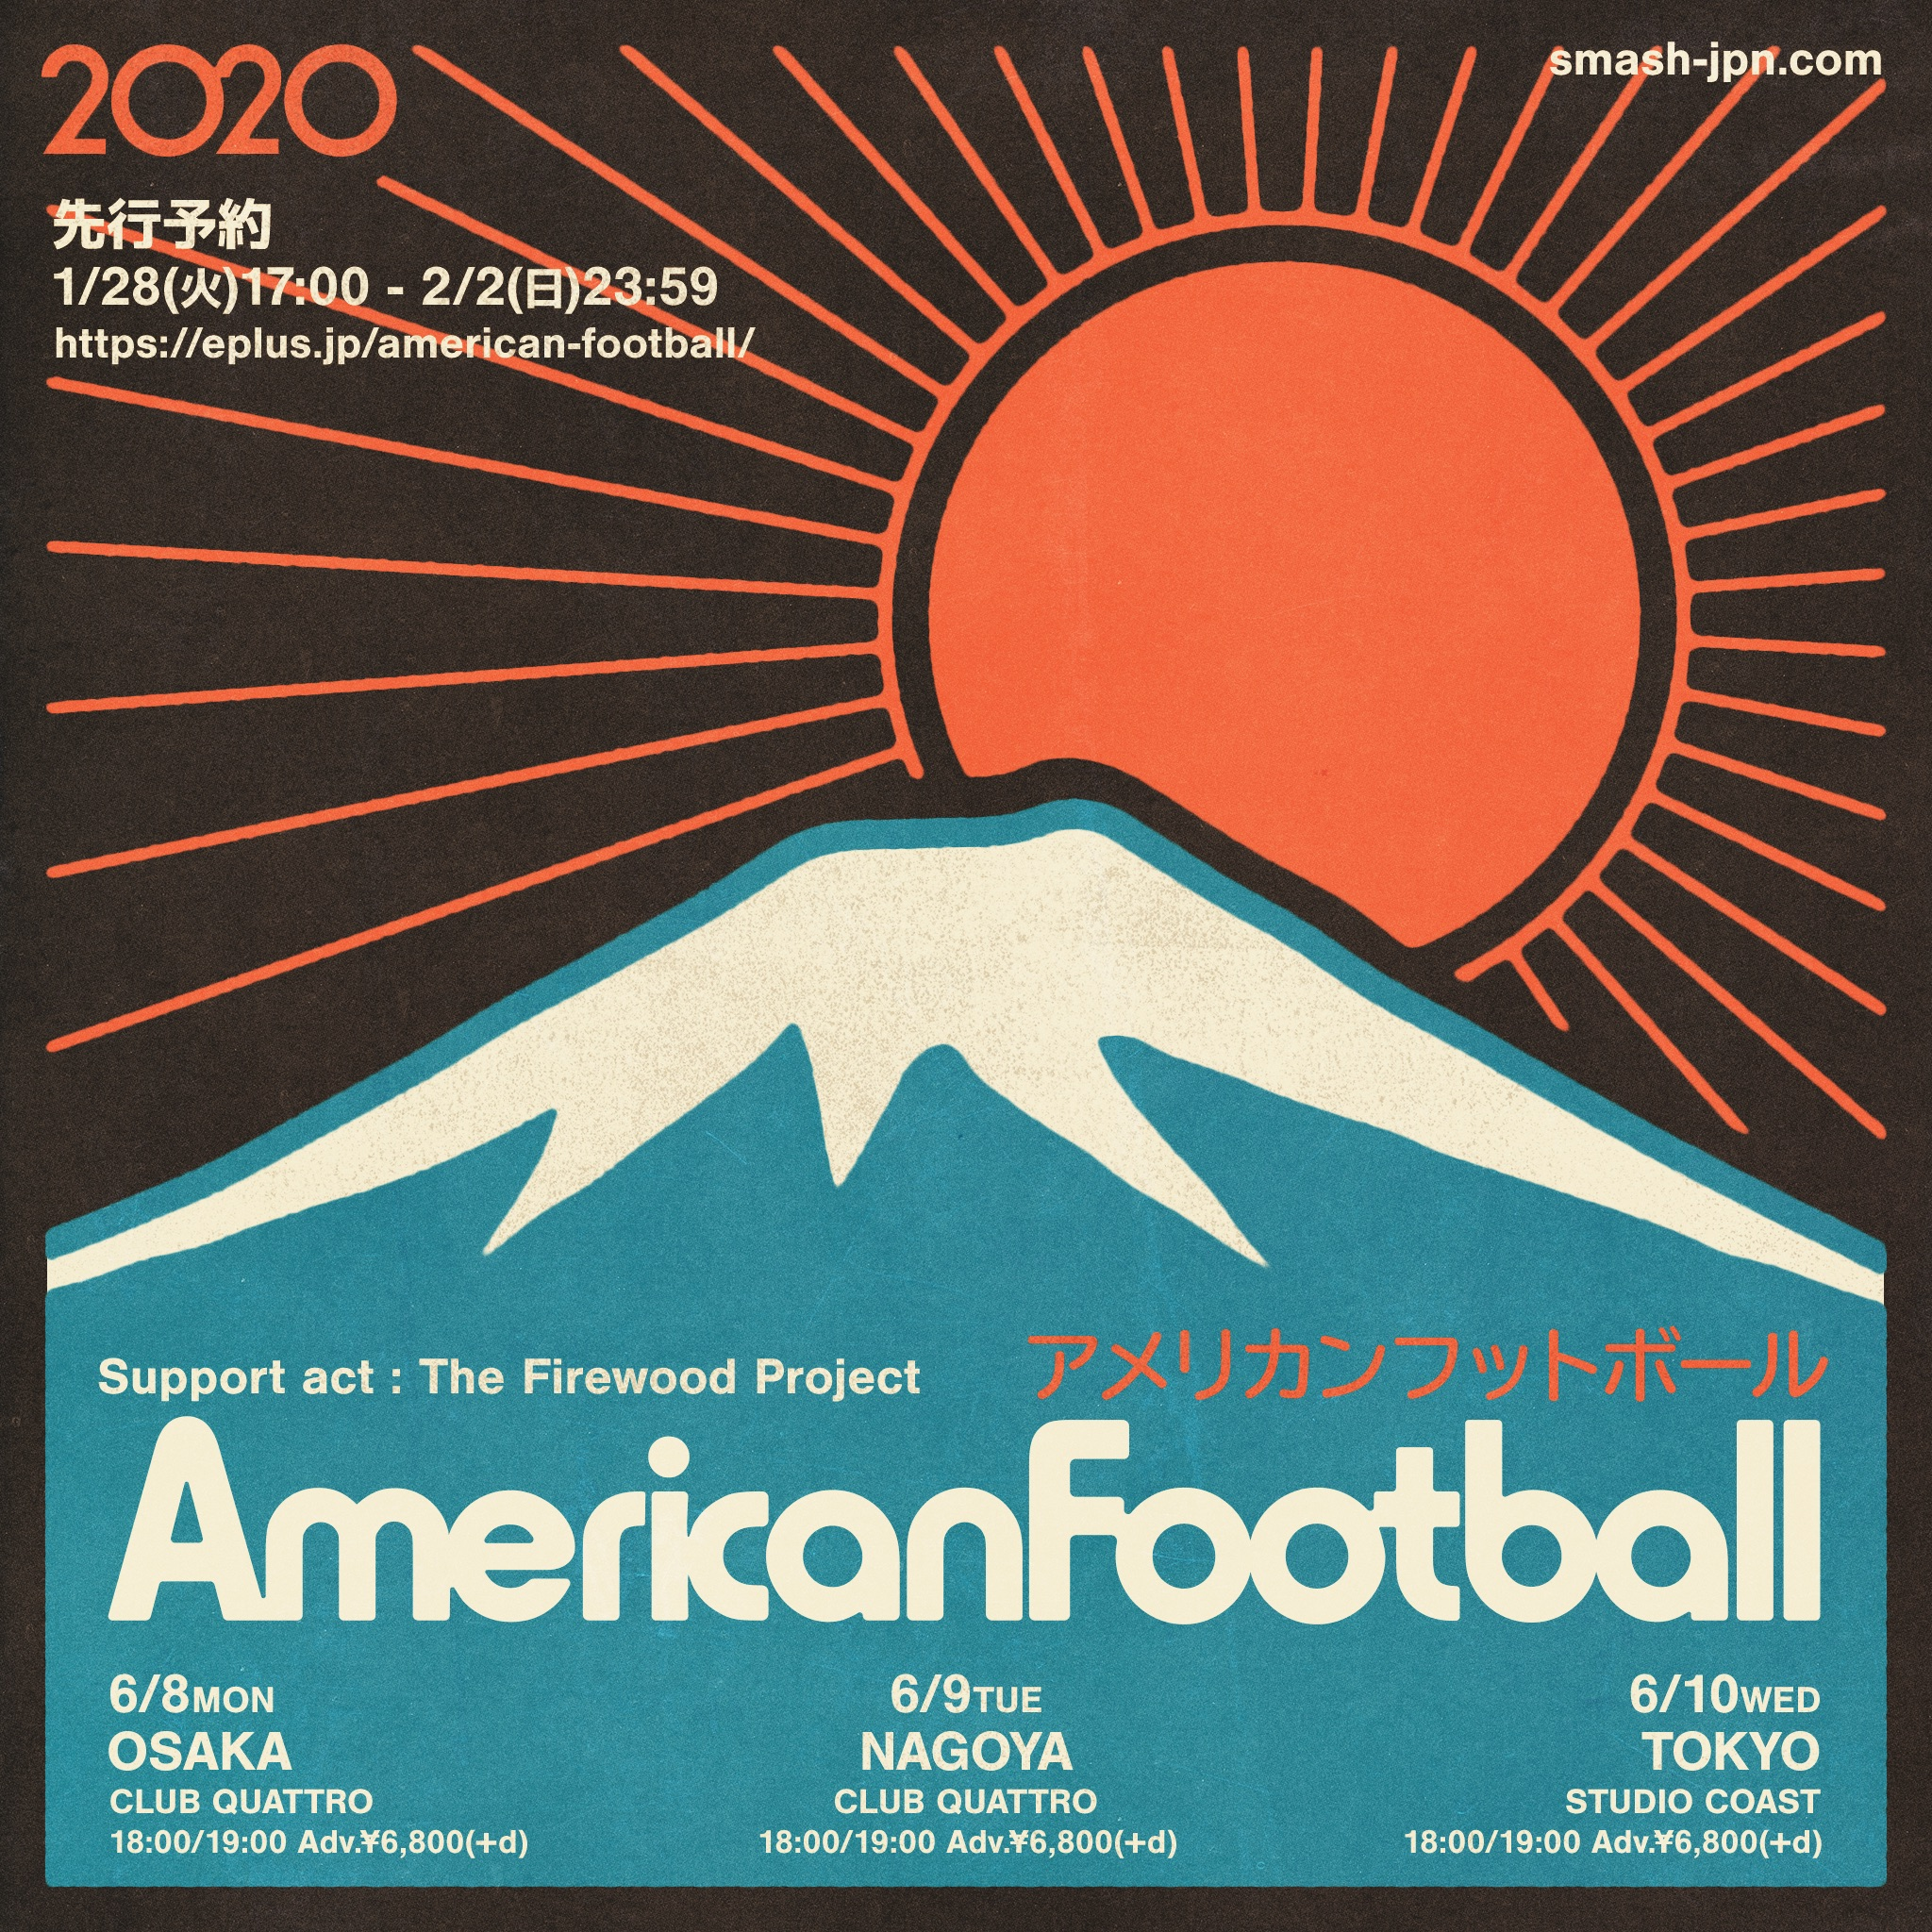 AMERICAN FOOTBALL Support act: The Firewood Project